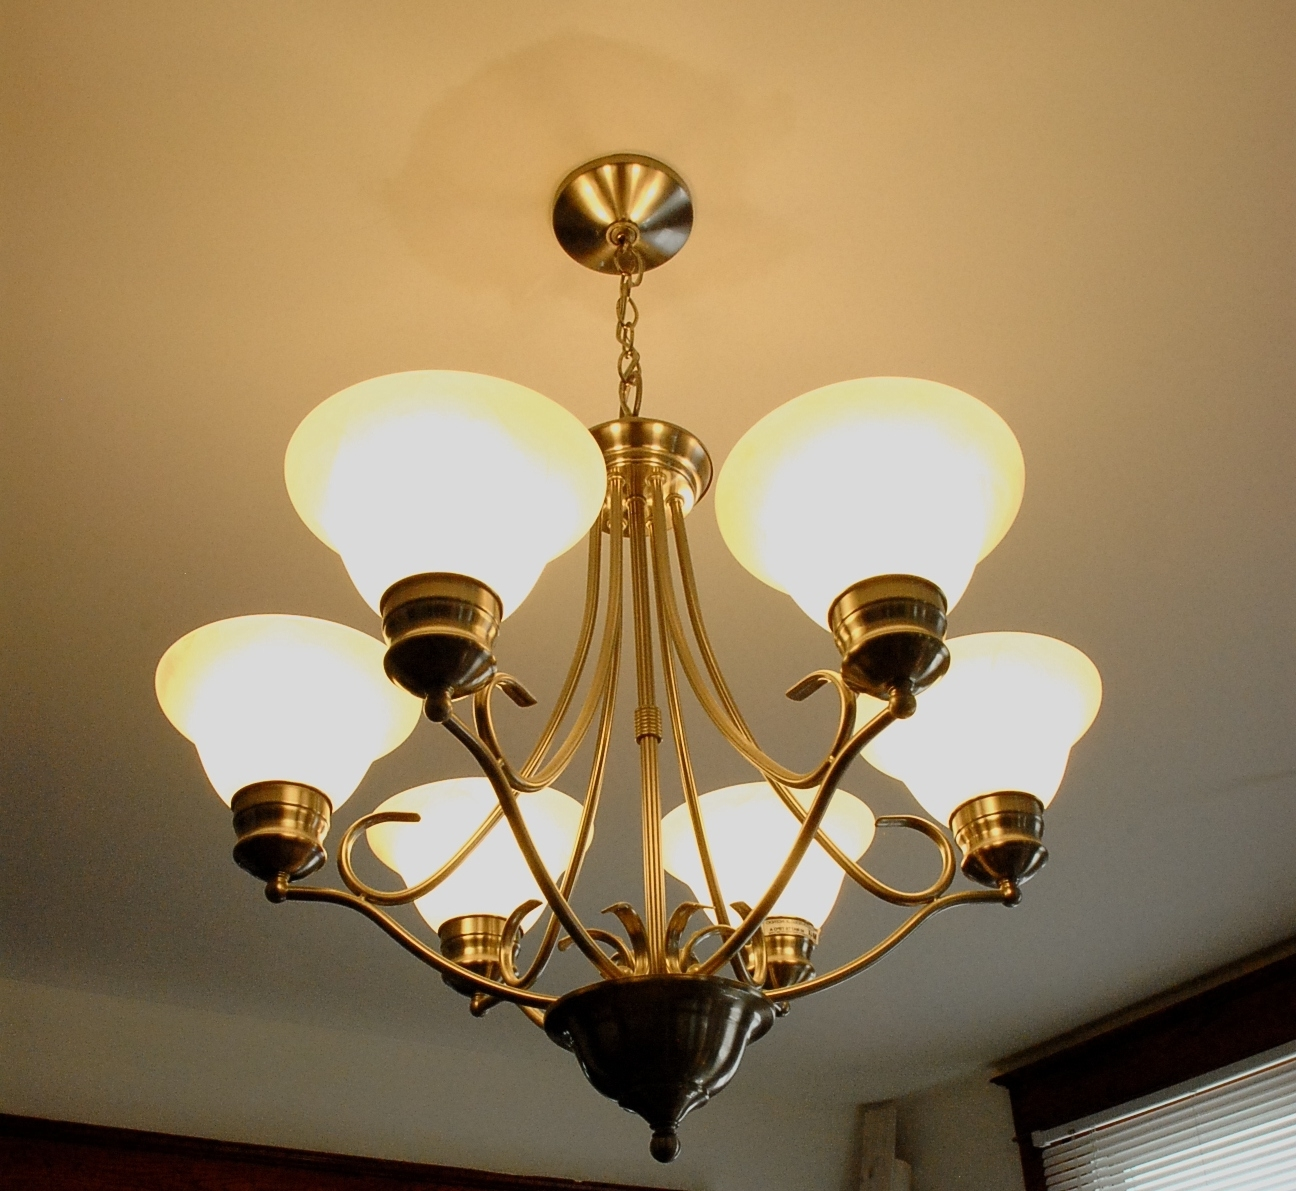 Chandeliers, Wall Sconces, And Light Fixtures (View 2 of 20)